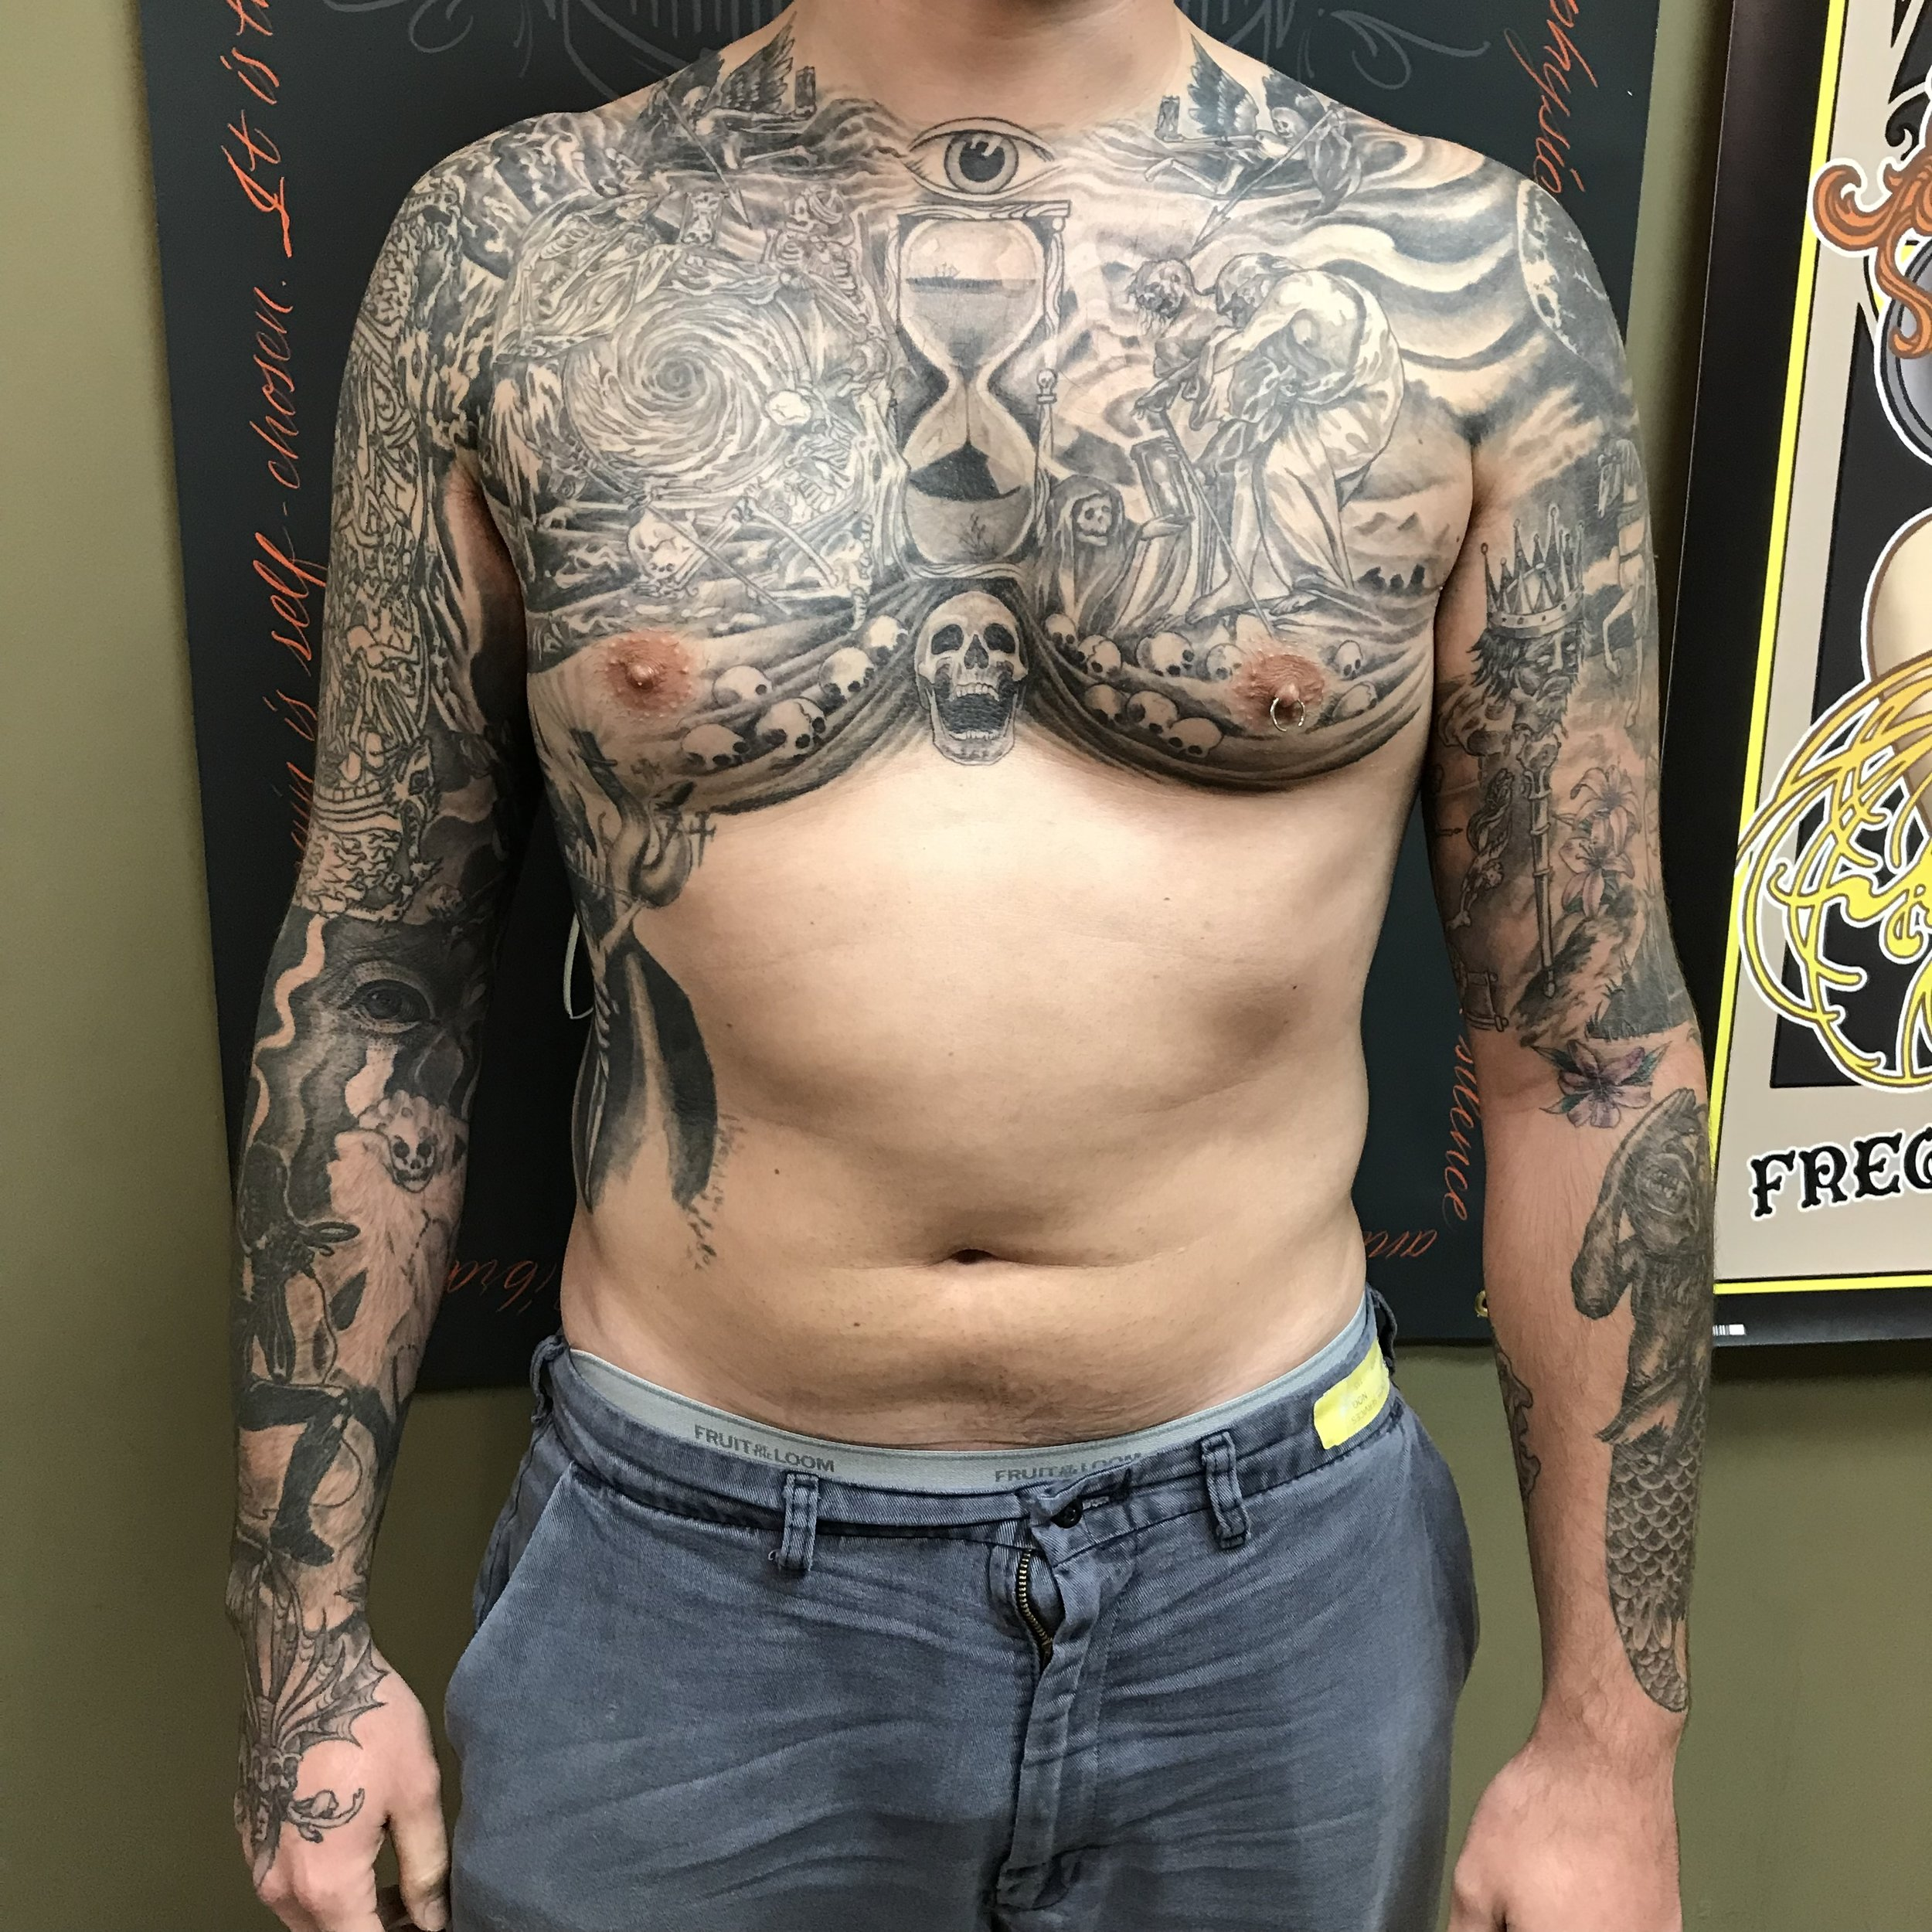 bg Justin Turkus Philadelphia fine line lettering best tattoo Artist bodysuit wip john skull death eye hourglass sleeve chest healed fullsize.jpg